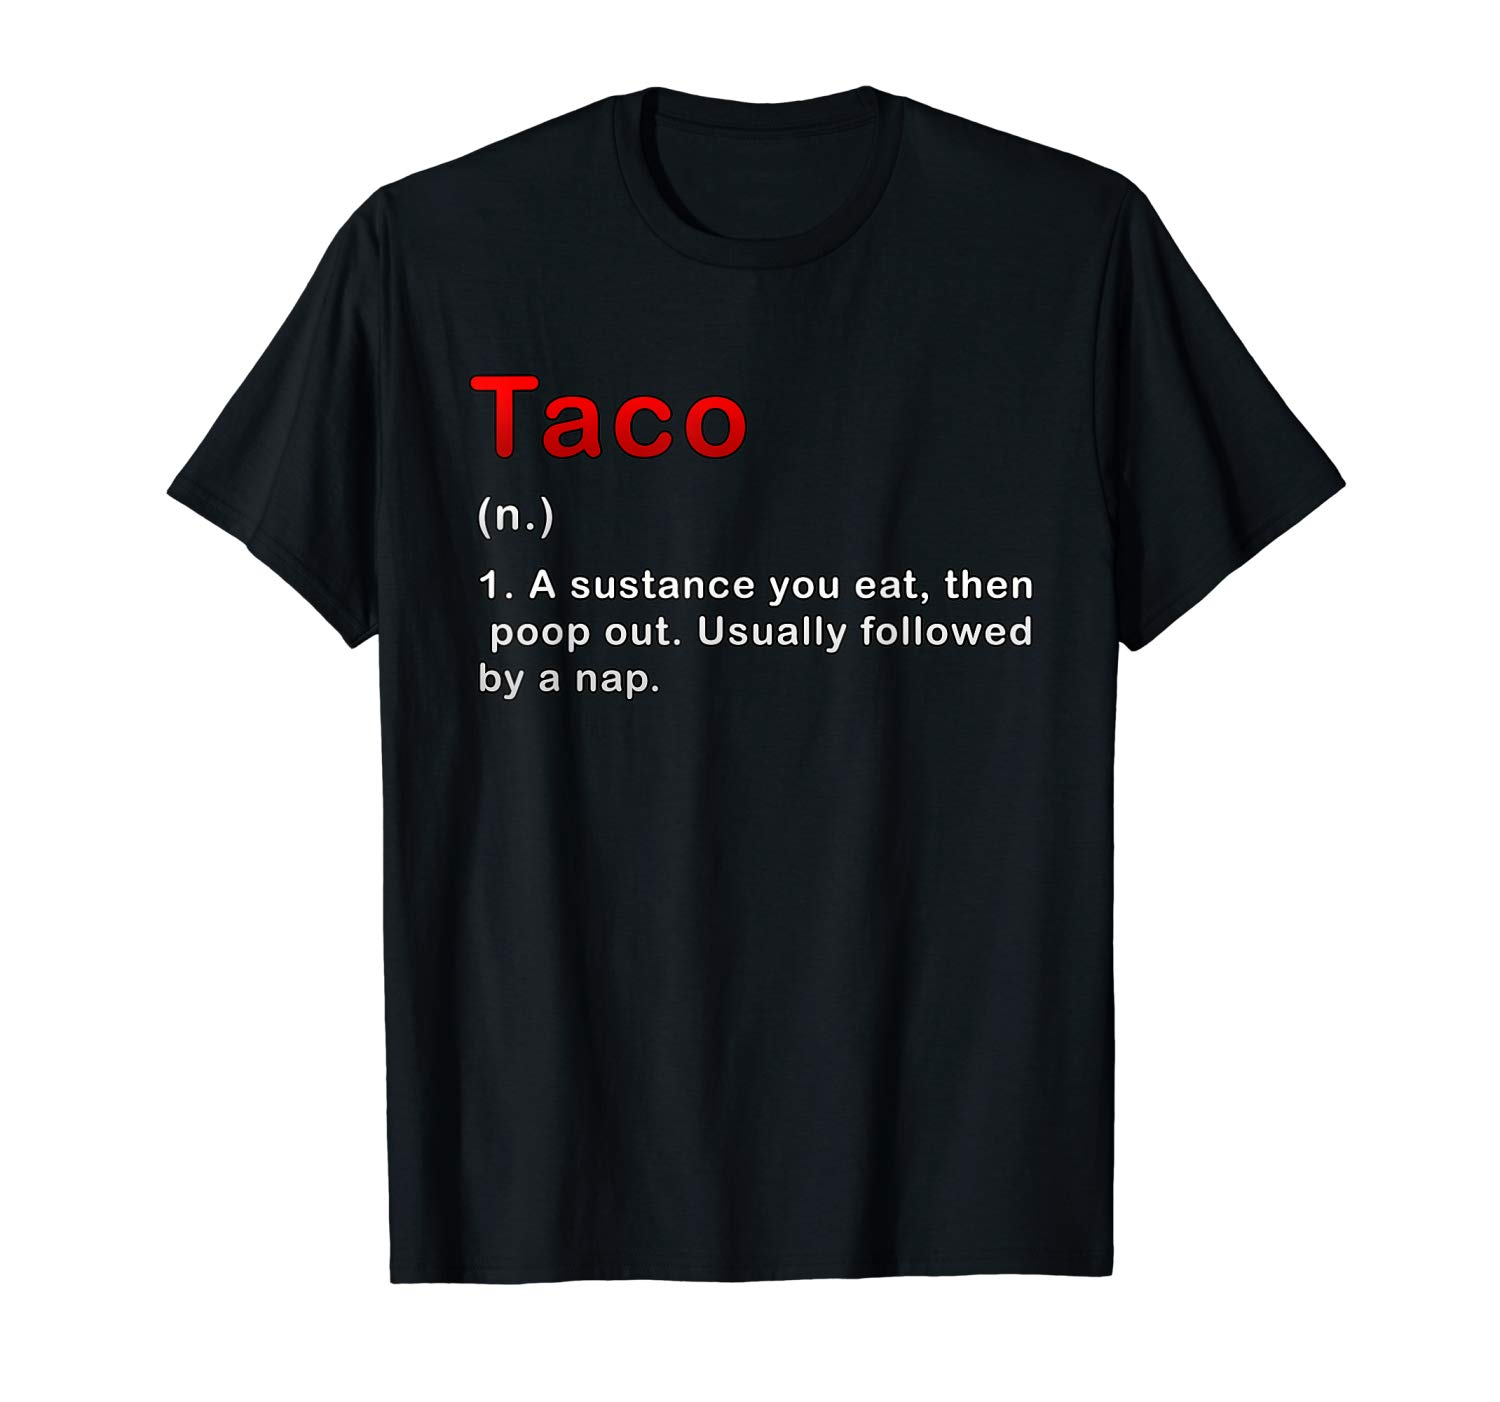 Offensive Tacos Dictionary Definition T Shirt For Food Lover